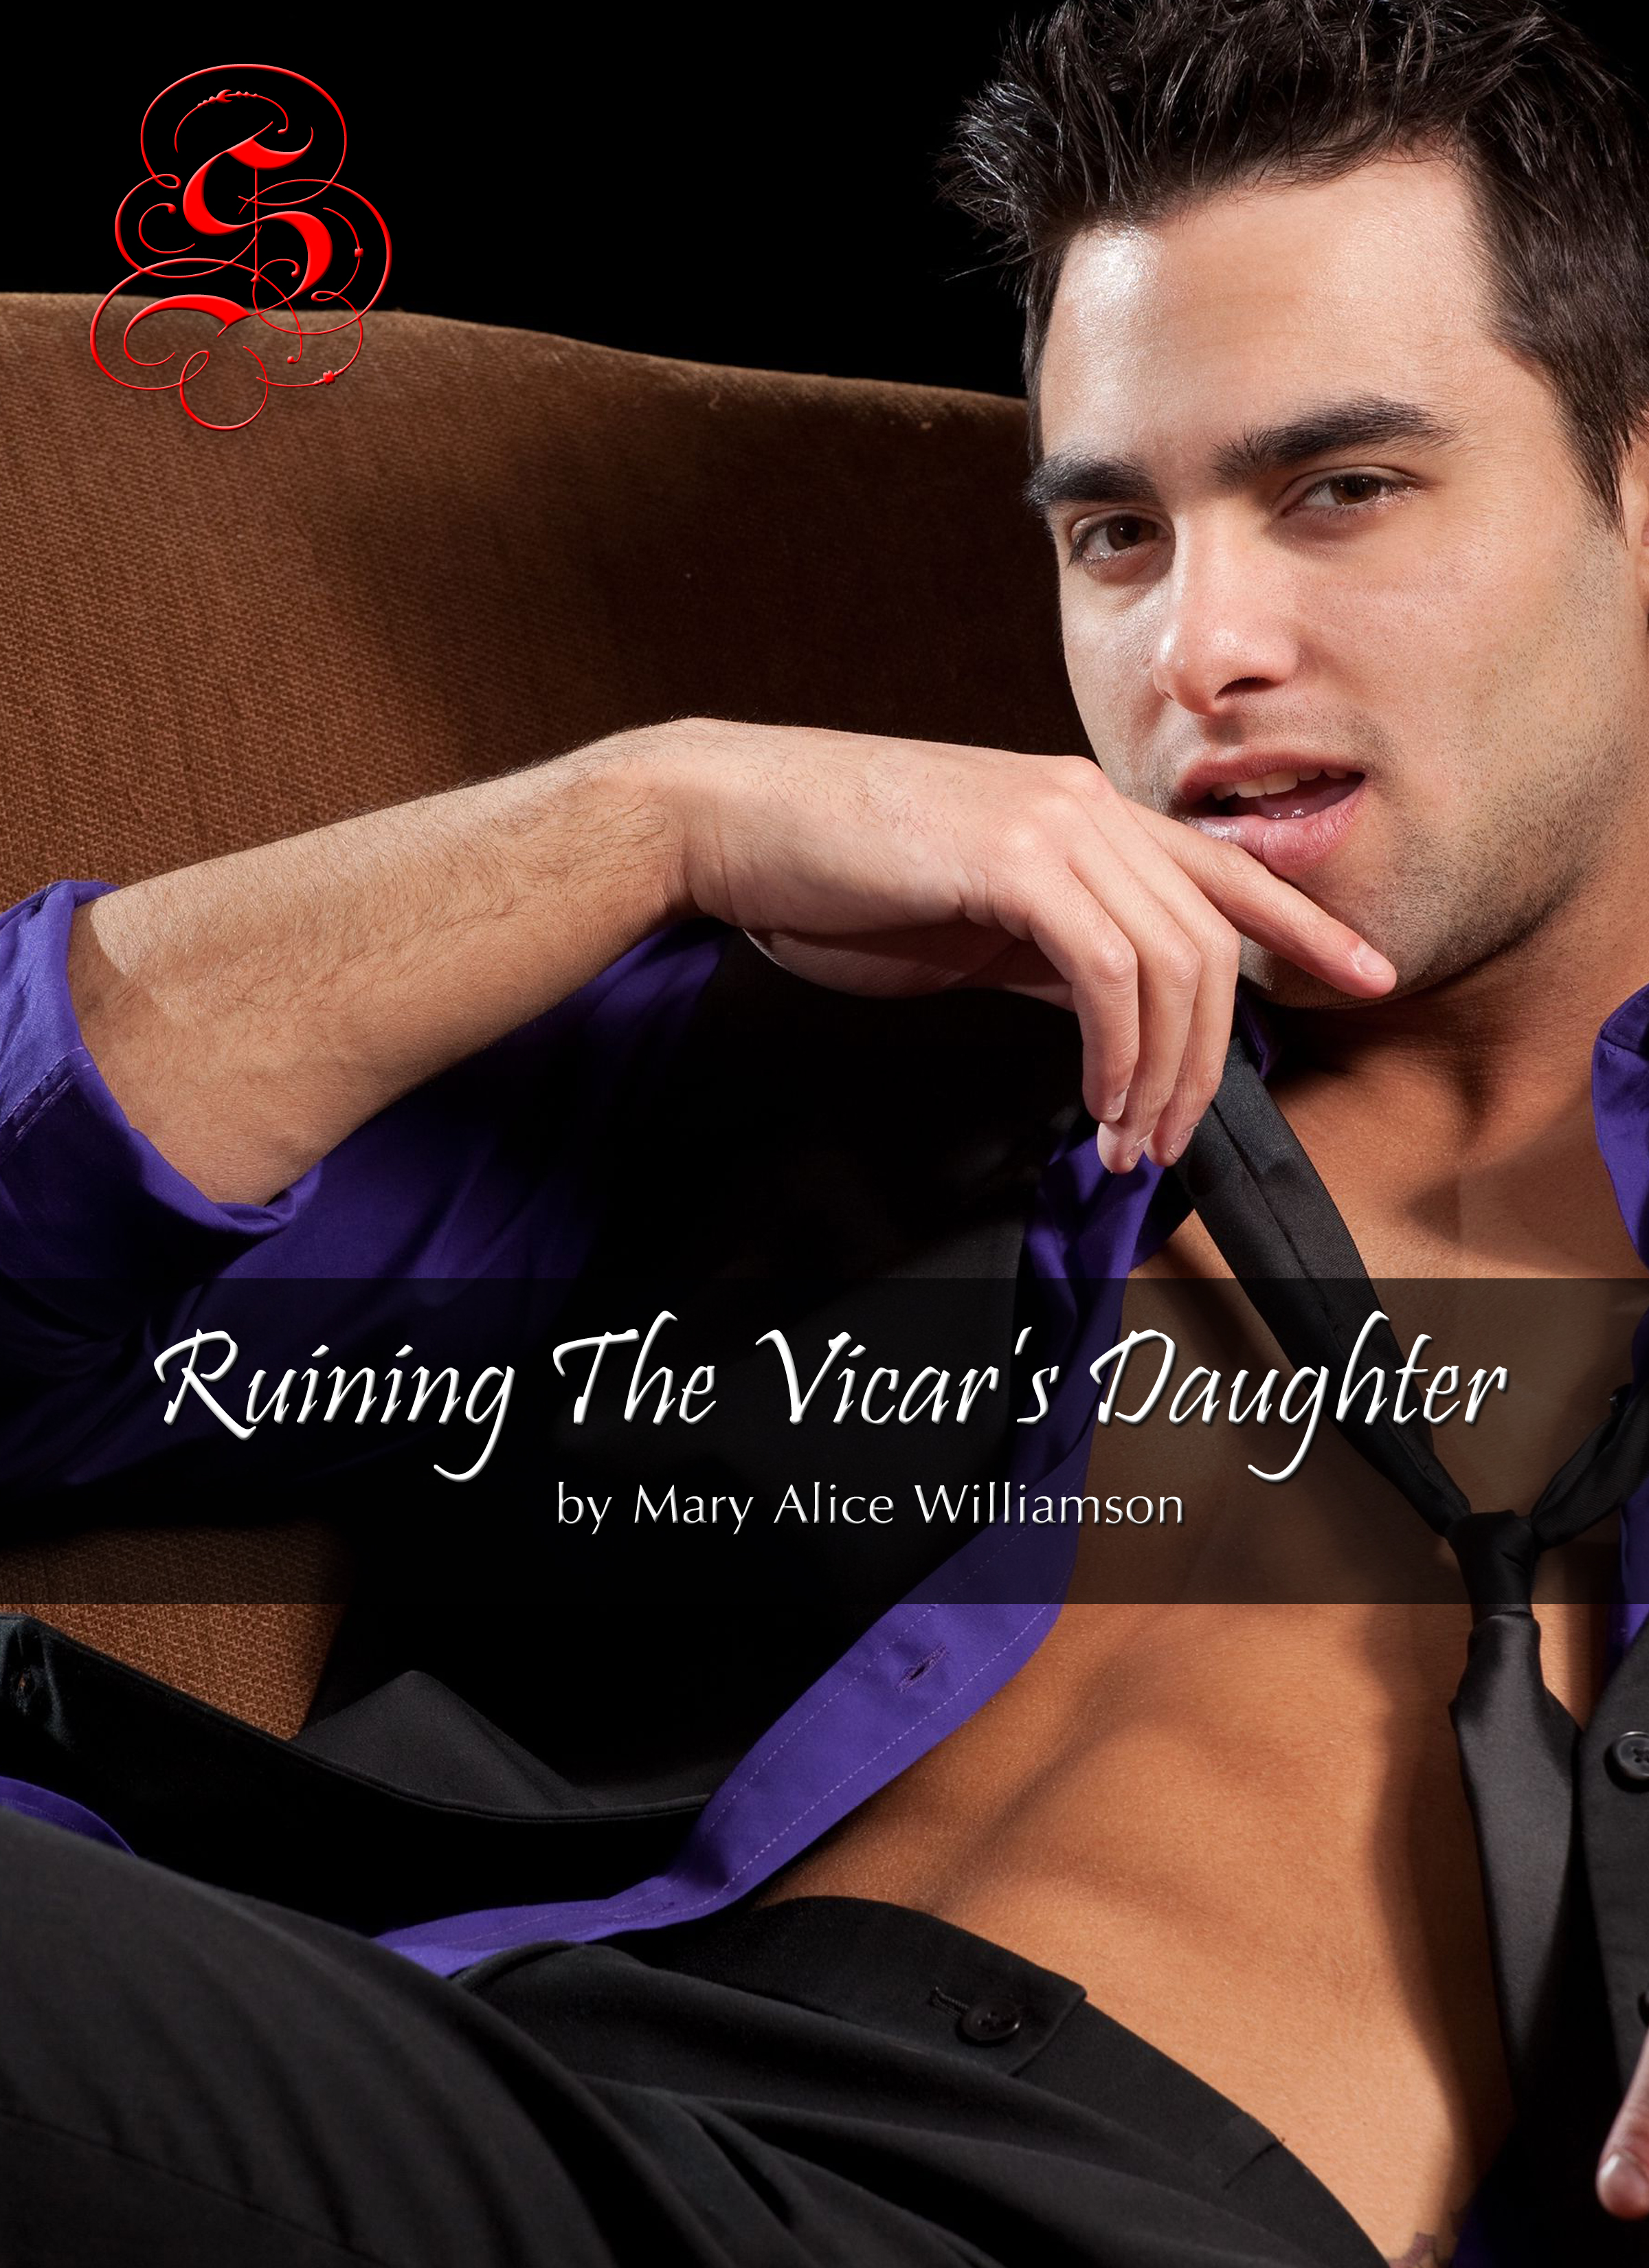 Mary Alice Williamson - Ruining the Vicar's Daughter